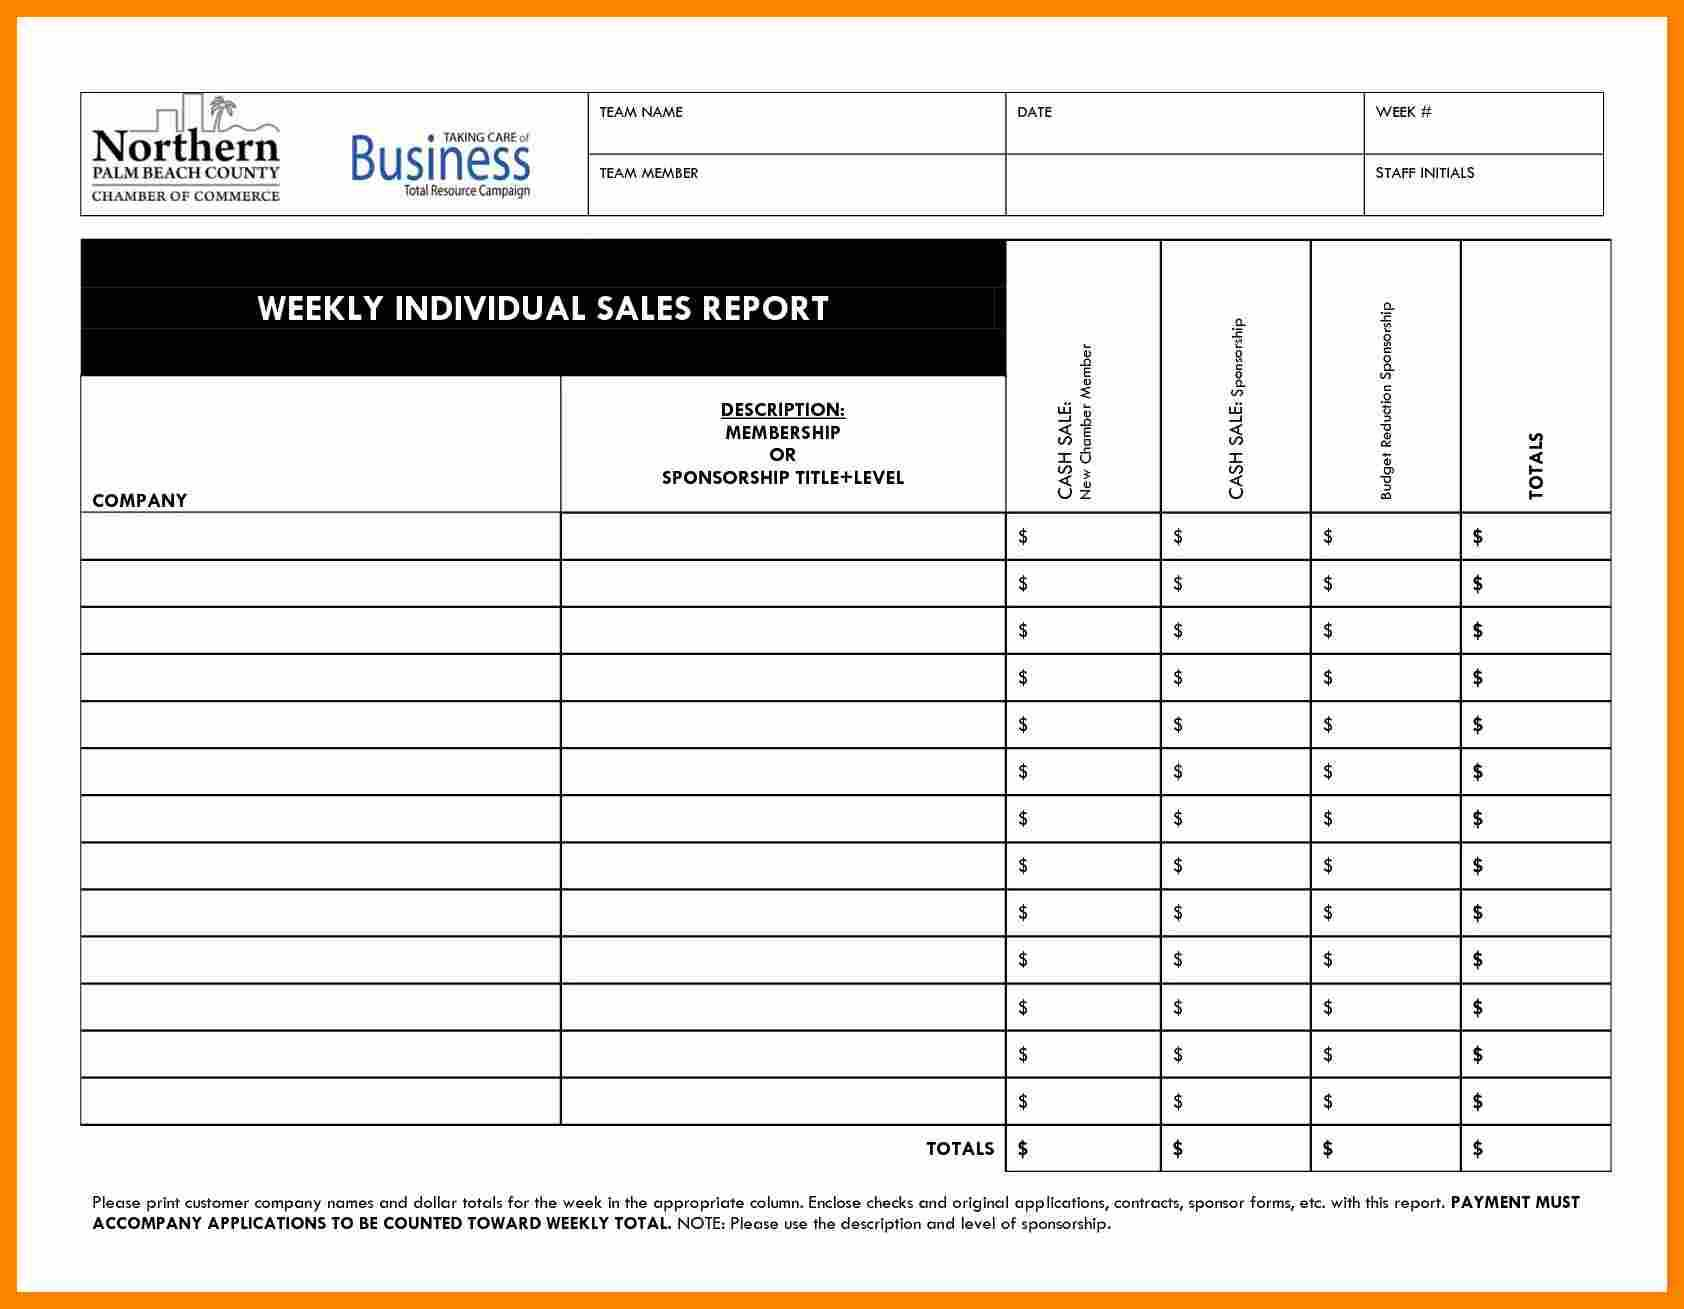 010 Daily Activity Report Template Free Download Salesll Intended For Daily Sales Call Report Template Free Download